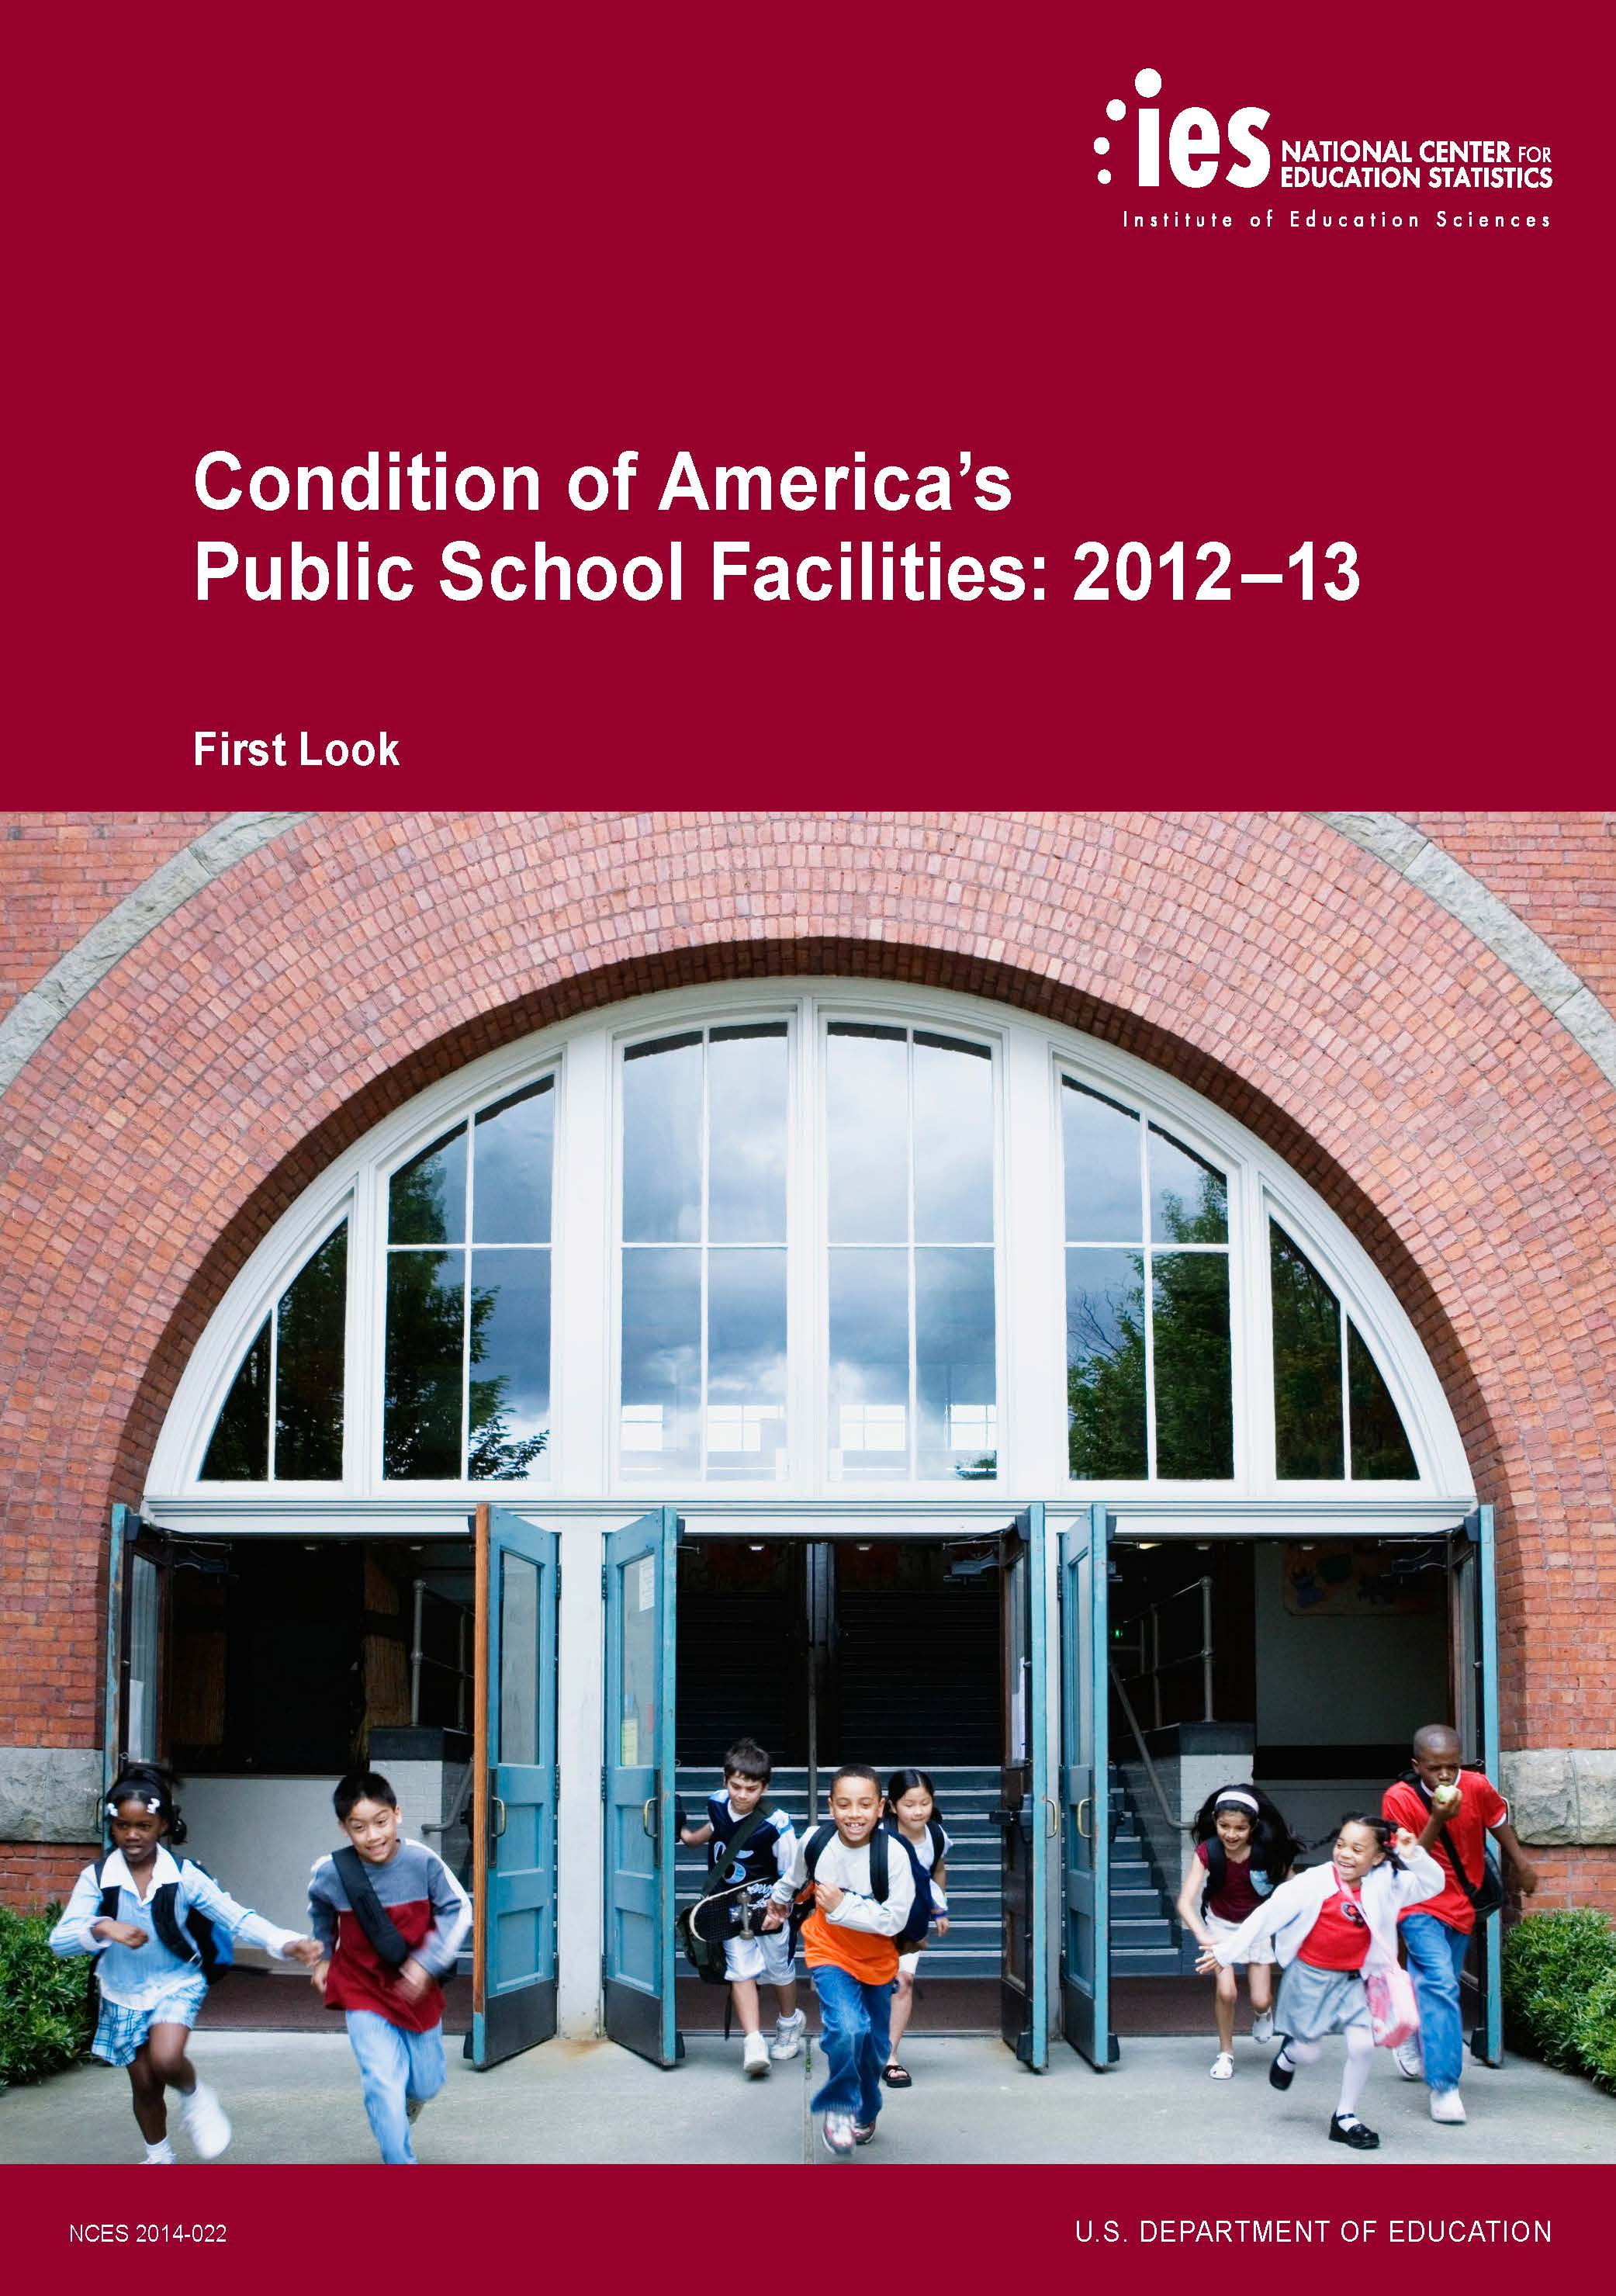 Pages from School Condition Report 2014